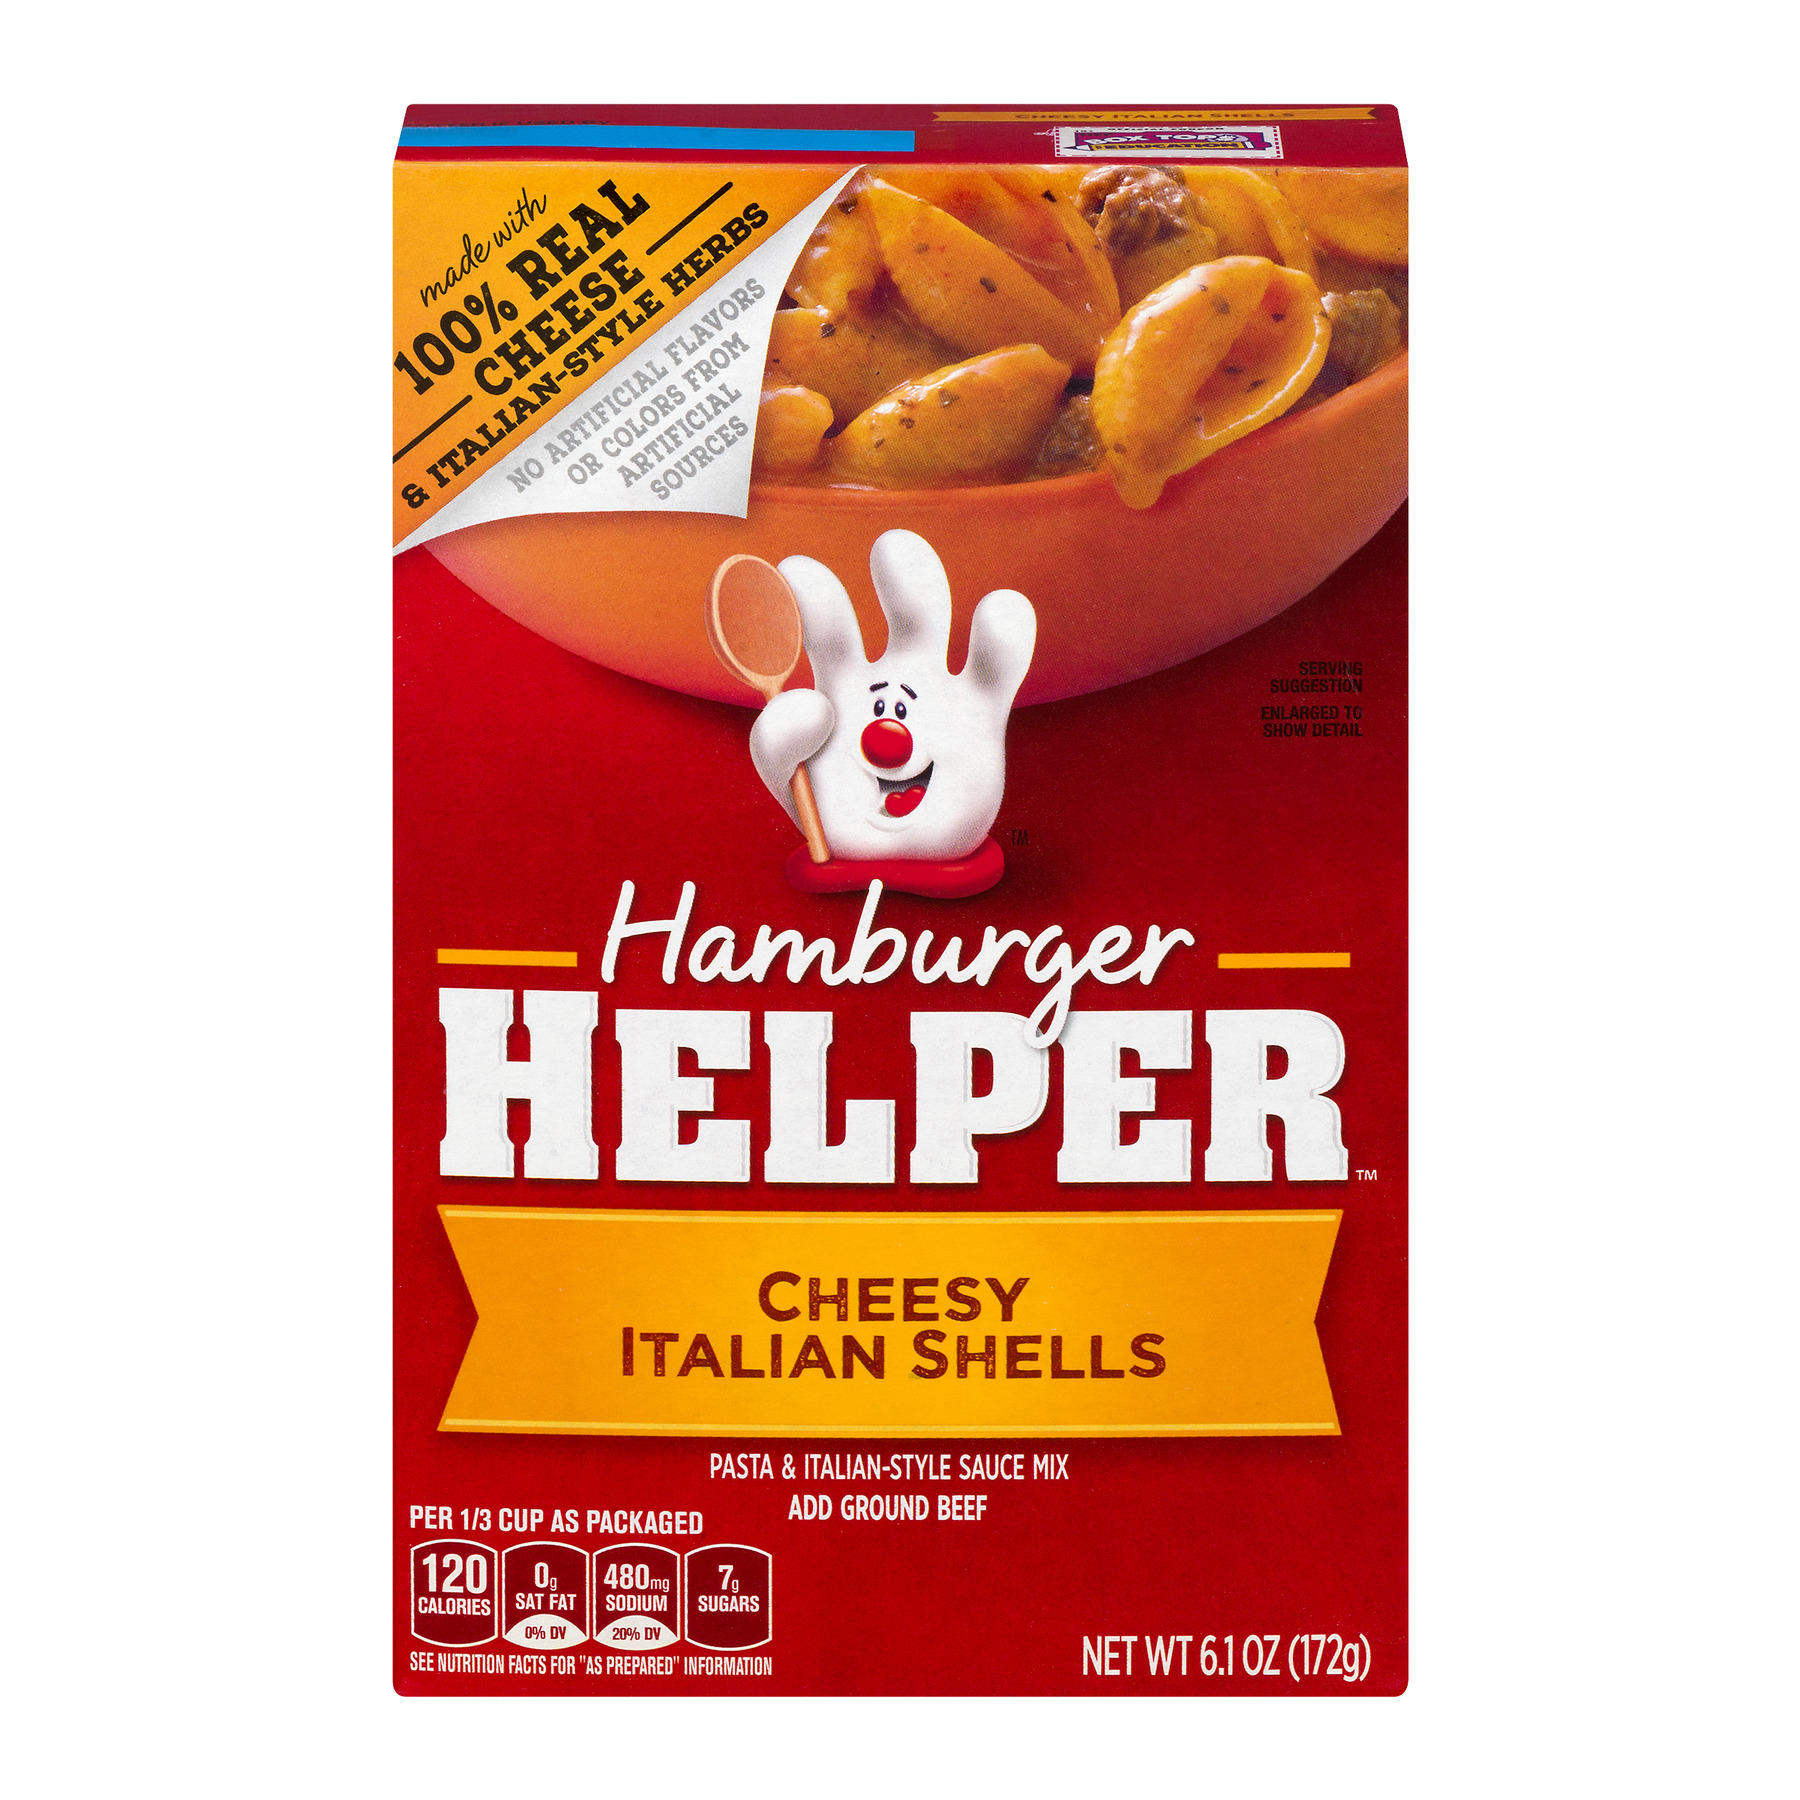 Betty Crocker Hamburger Helper, Cheesy Italian Shells Hamburger Helper, 6.1 Oz Box, 6.1 OZ